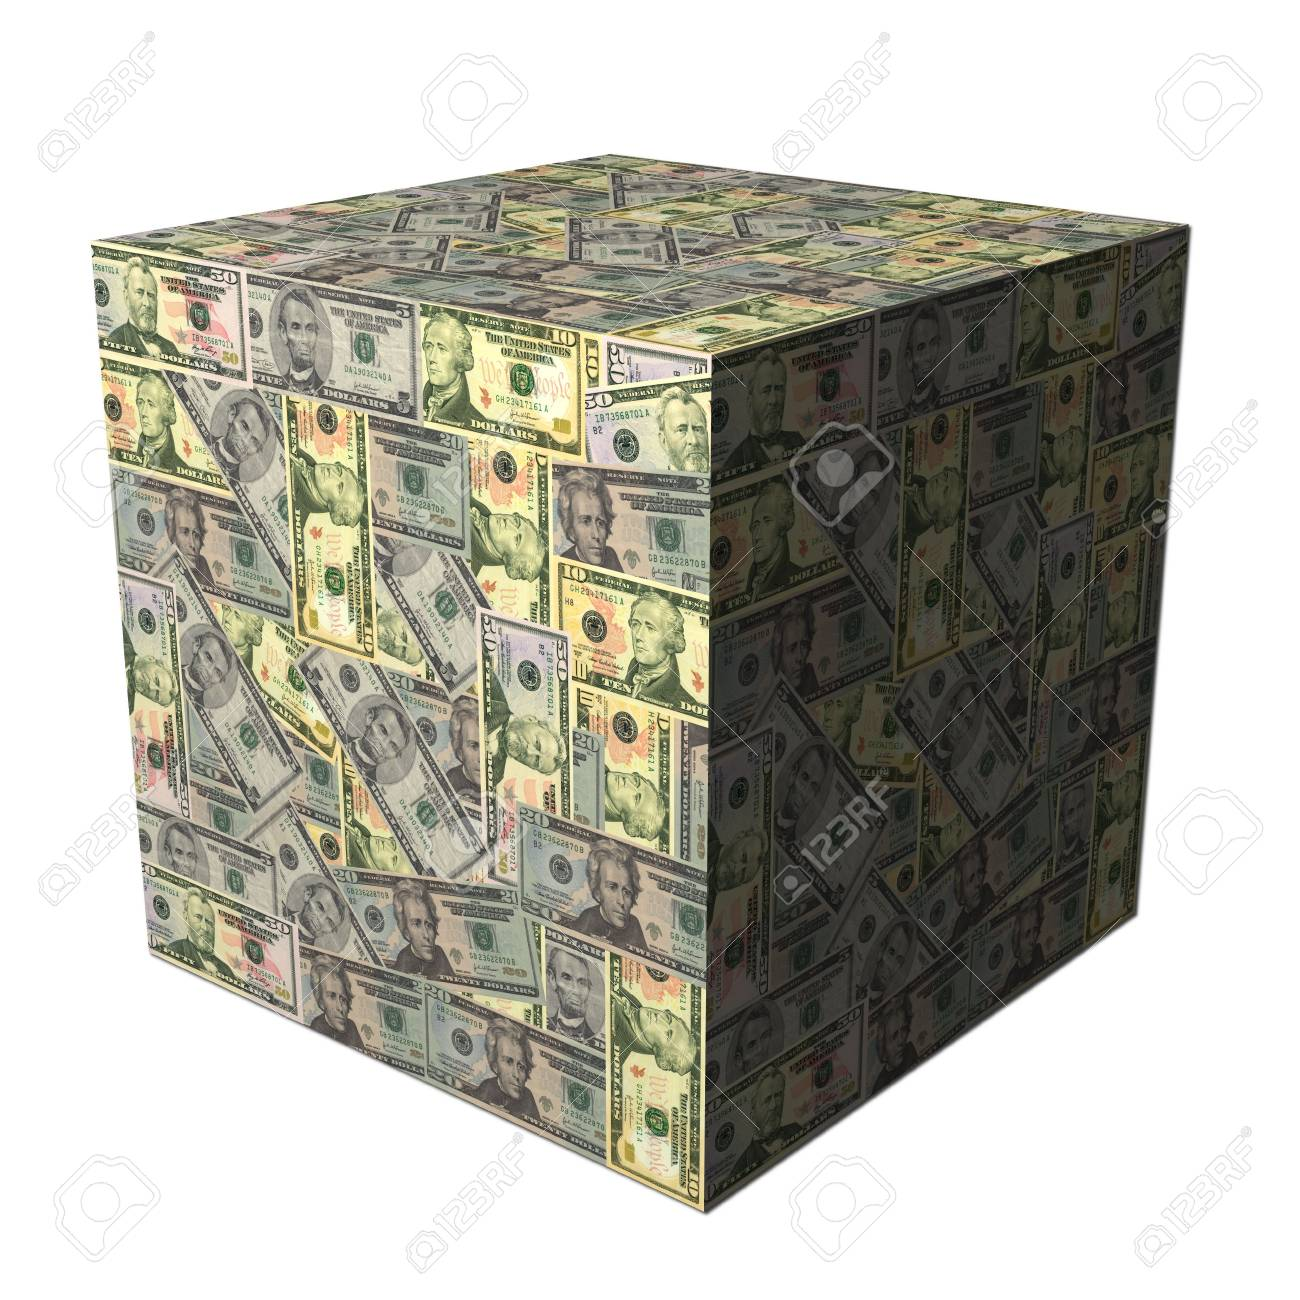 abstract cube covered in American dollars illustration Stock Illustration - 5391814